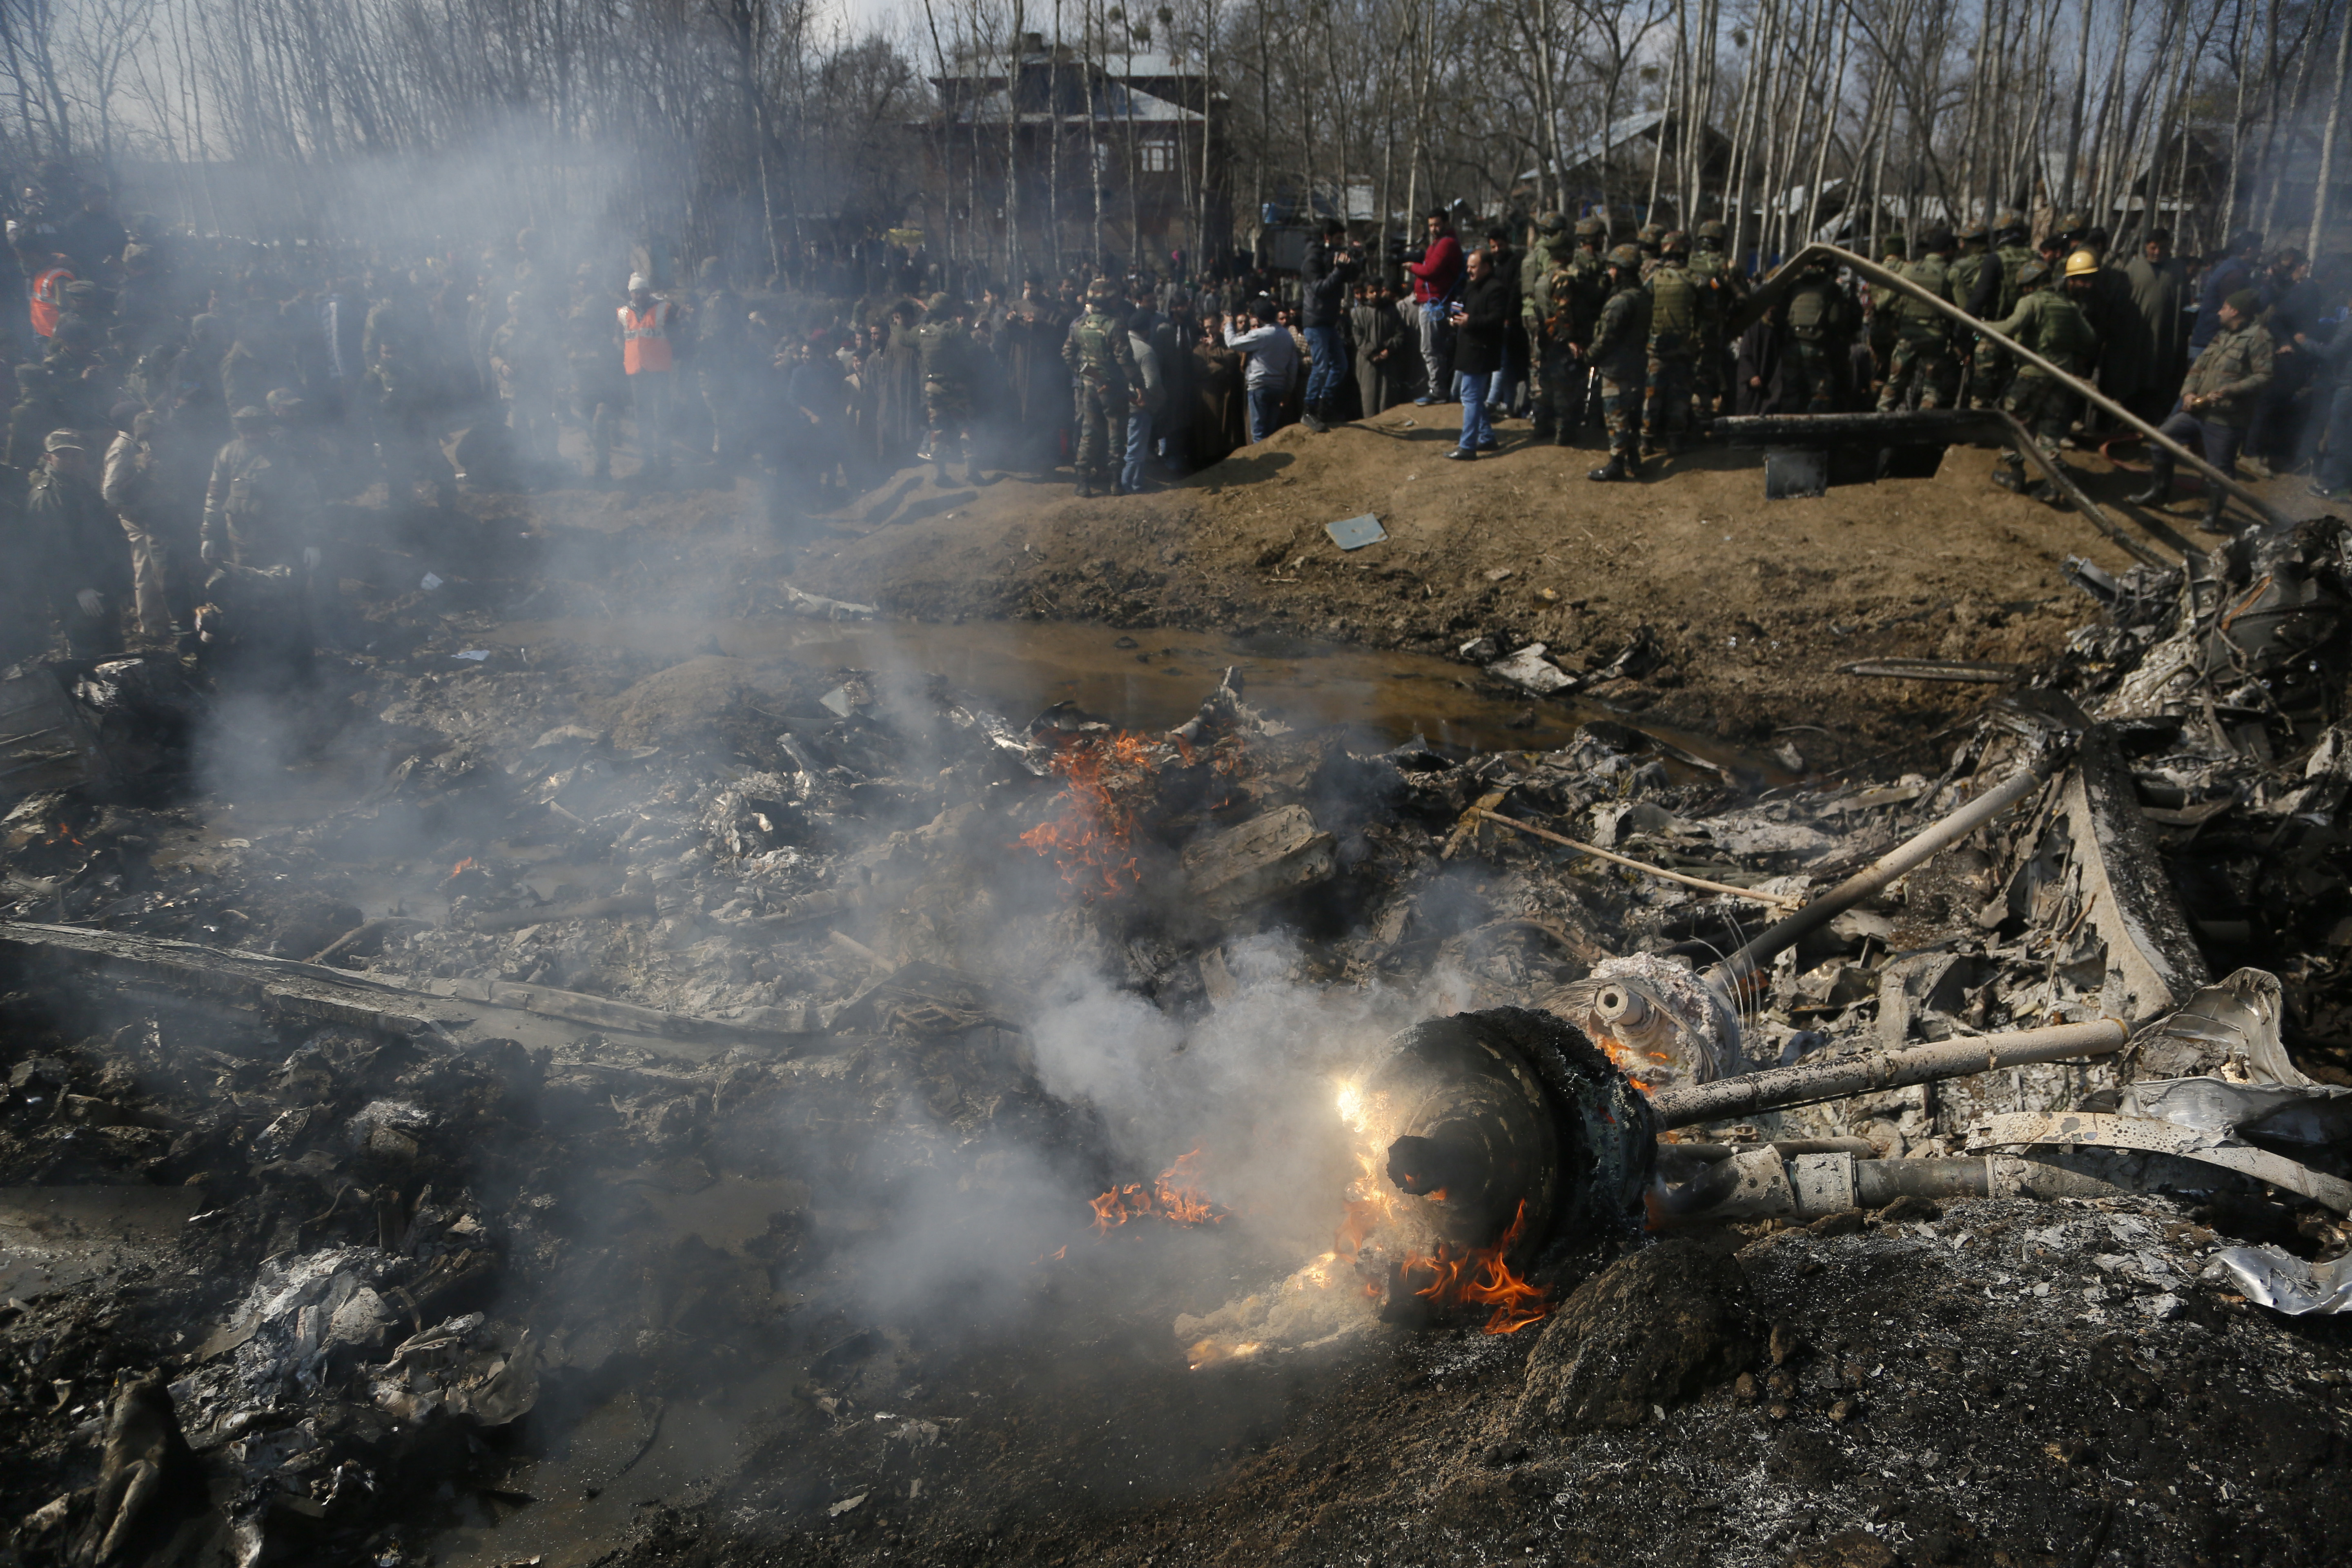 Kashmiri villagers and Indian army soldiers gather near  the wreckage of an Indian aircraft after it crashed in Budgam area, outskirts of Srinagar, Indian controlled Kashmir, Wednesday, Feb.27, 2019. (AP Photo/Mukhtar Khan)